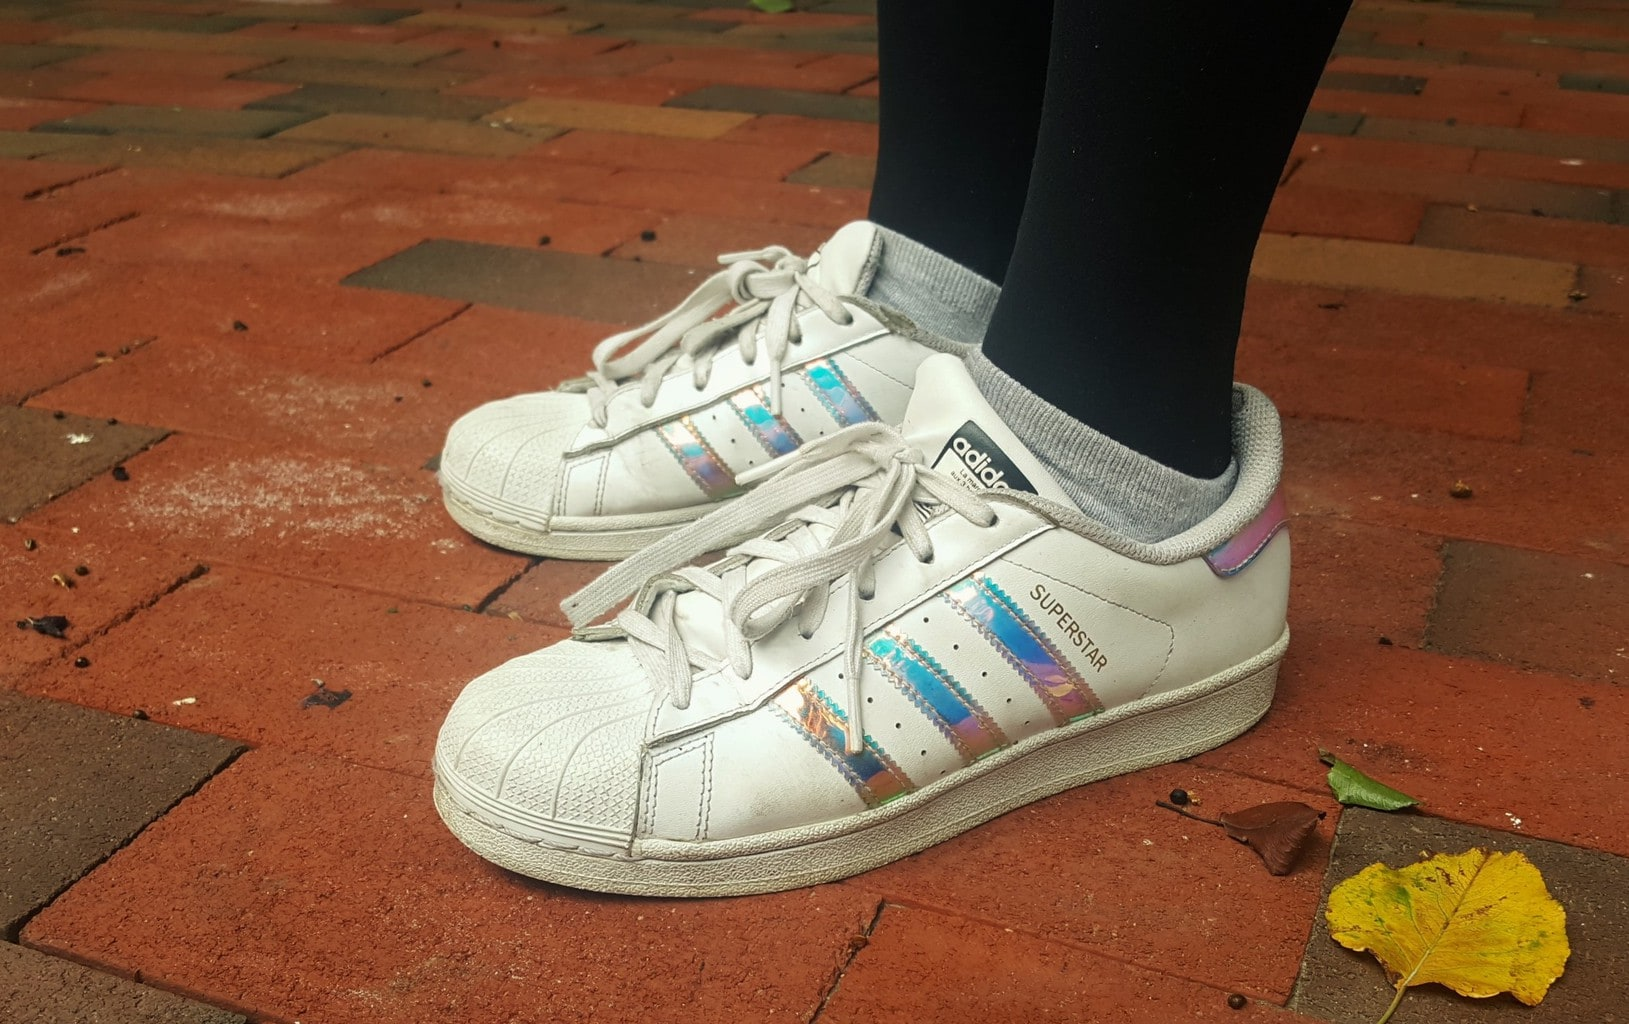 Alema's vintage-style white Adidas have holographic panels and rubber toes.